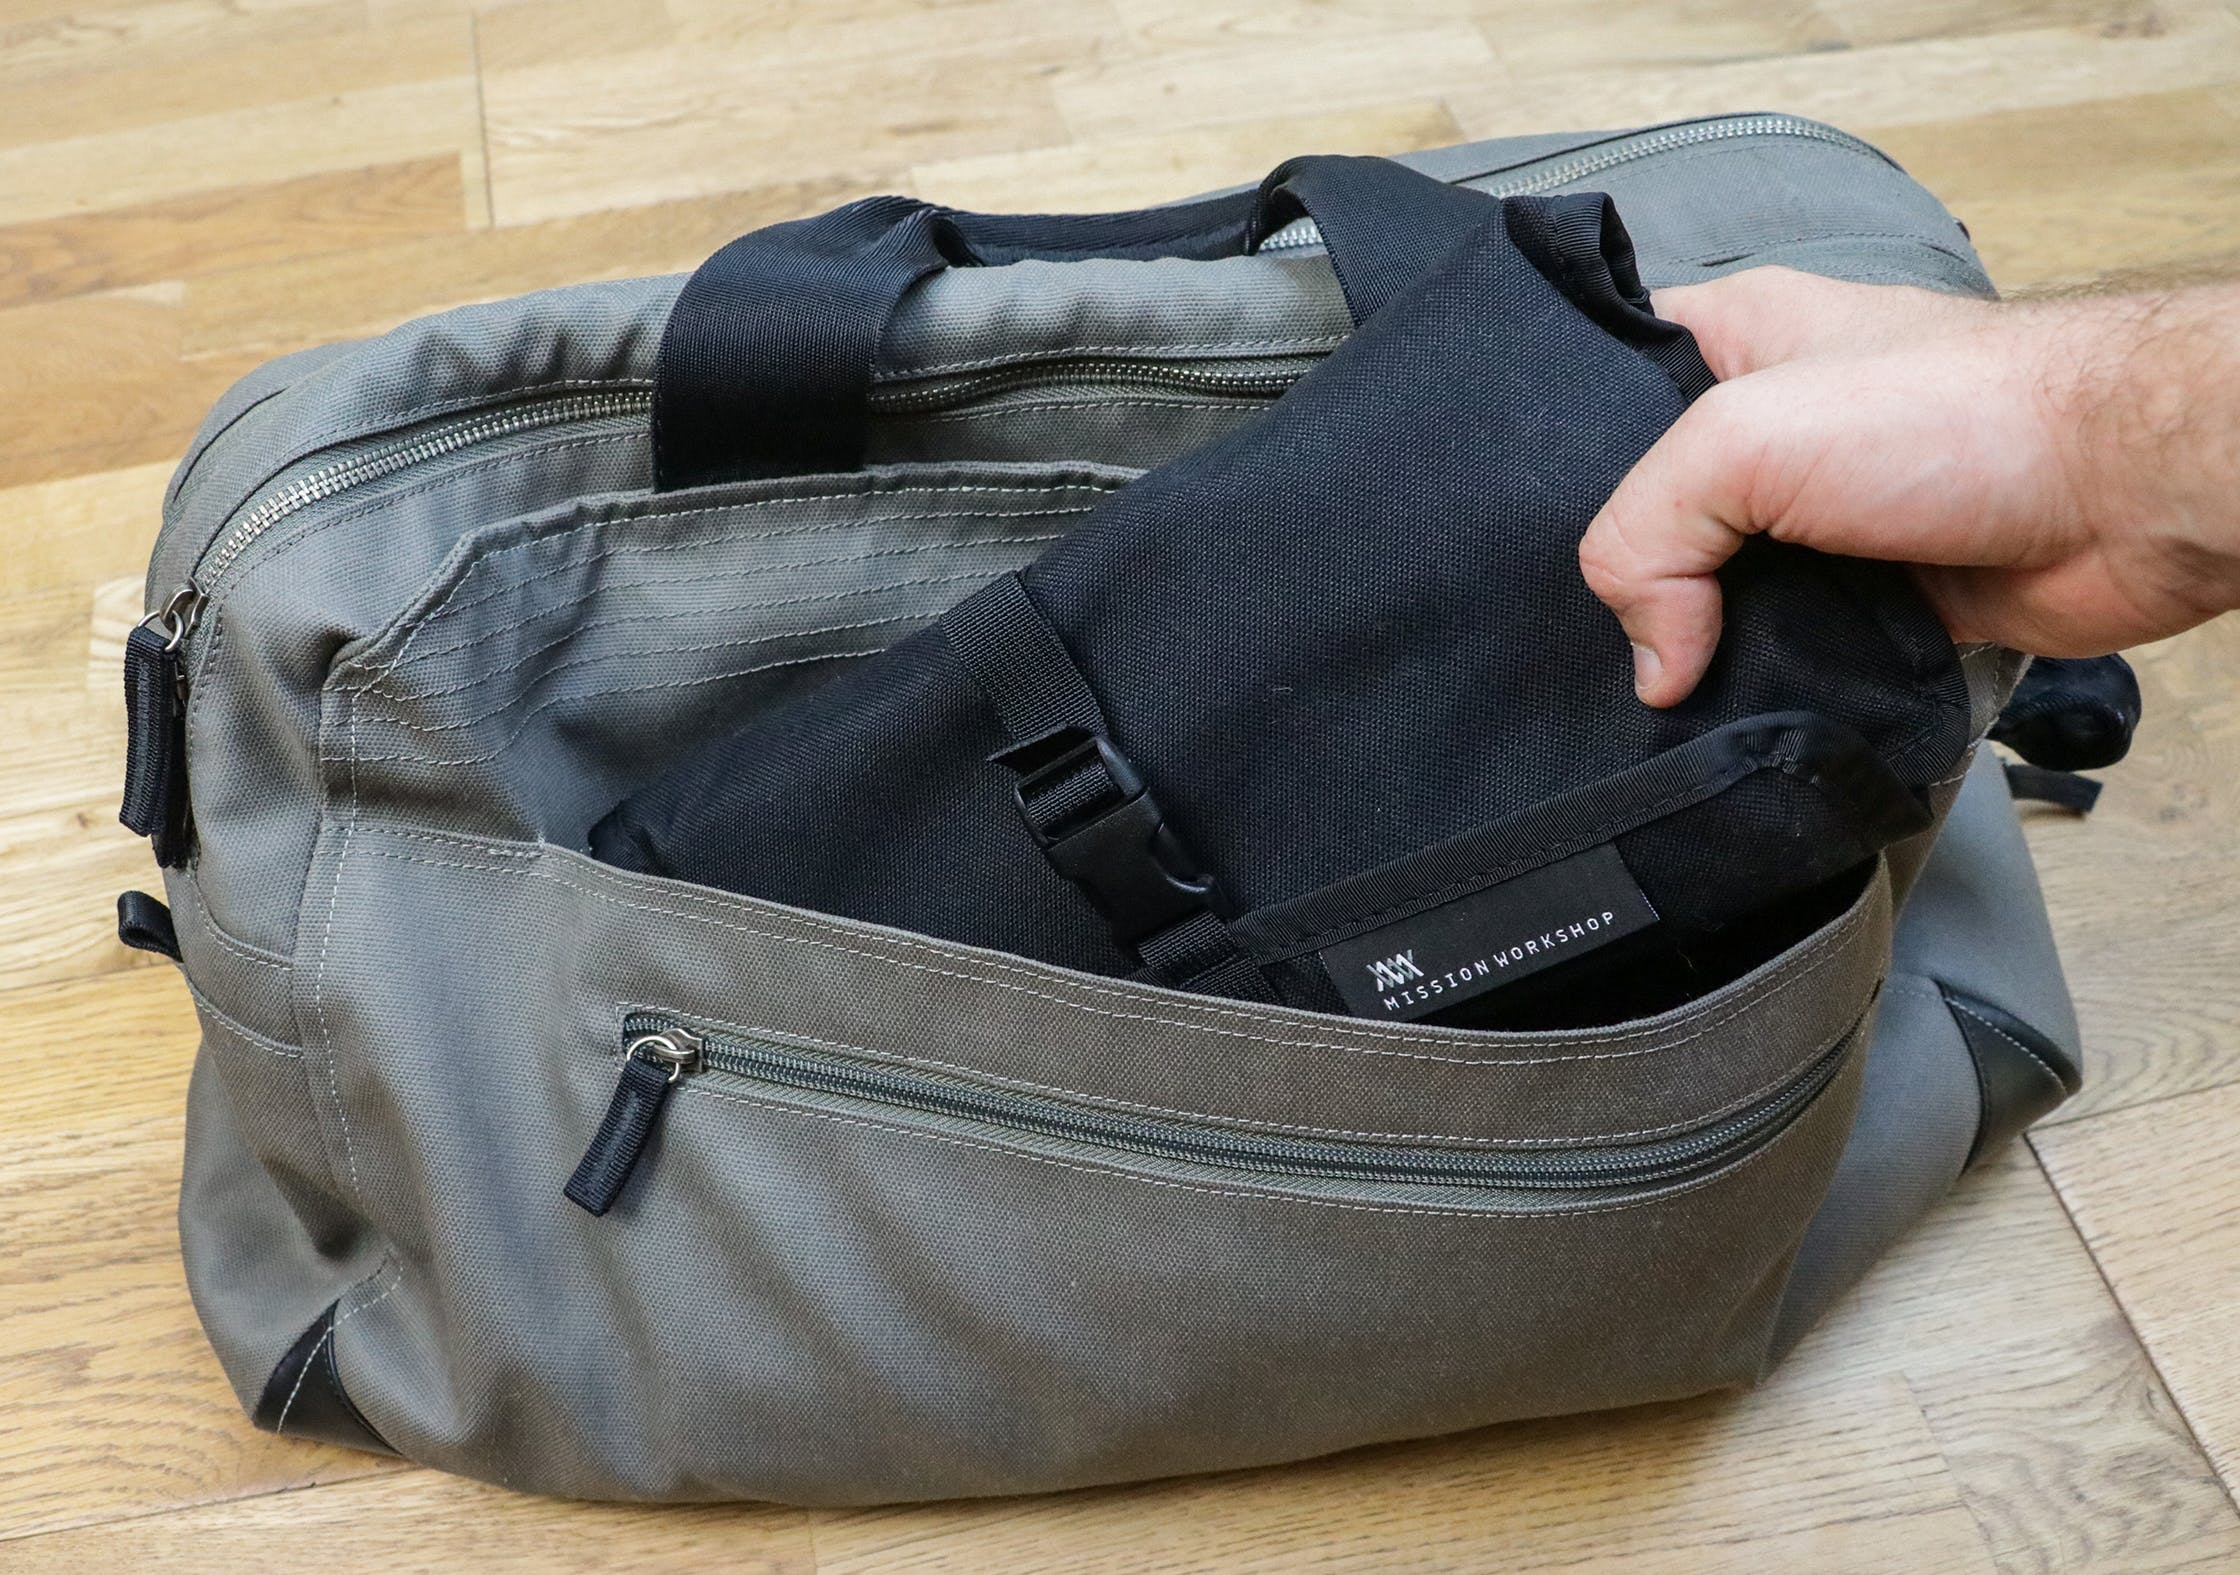 Taking The Mission Workshop Tool Roll Out Of The Pakt One